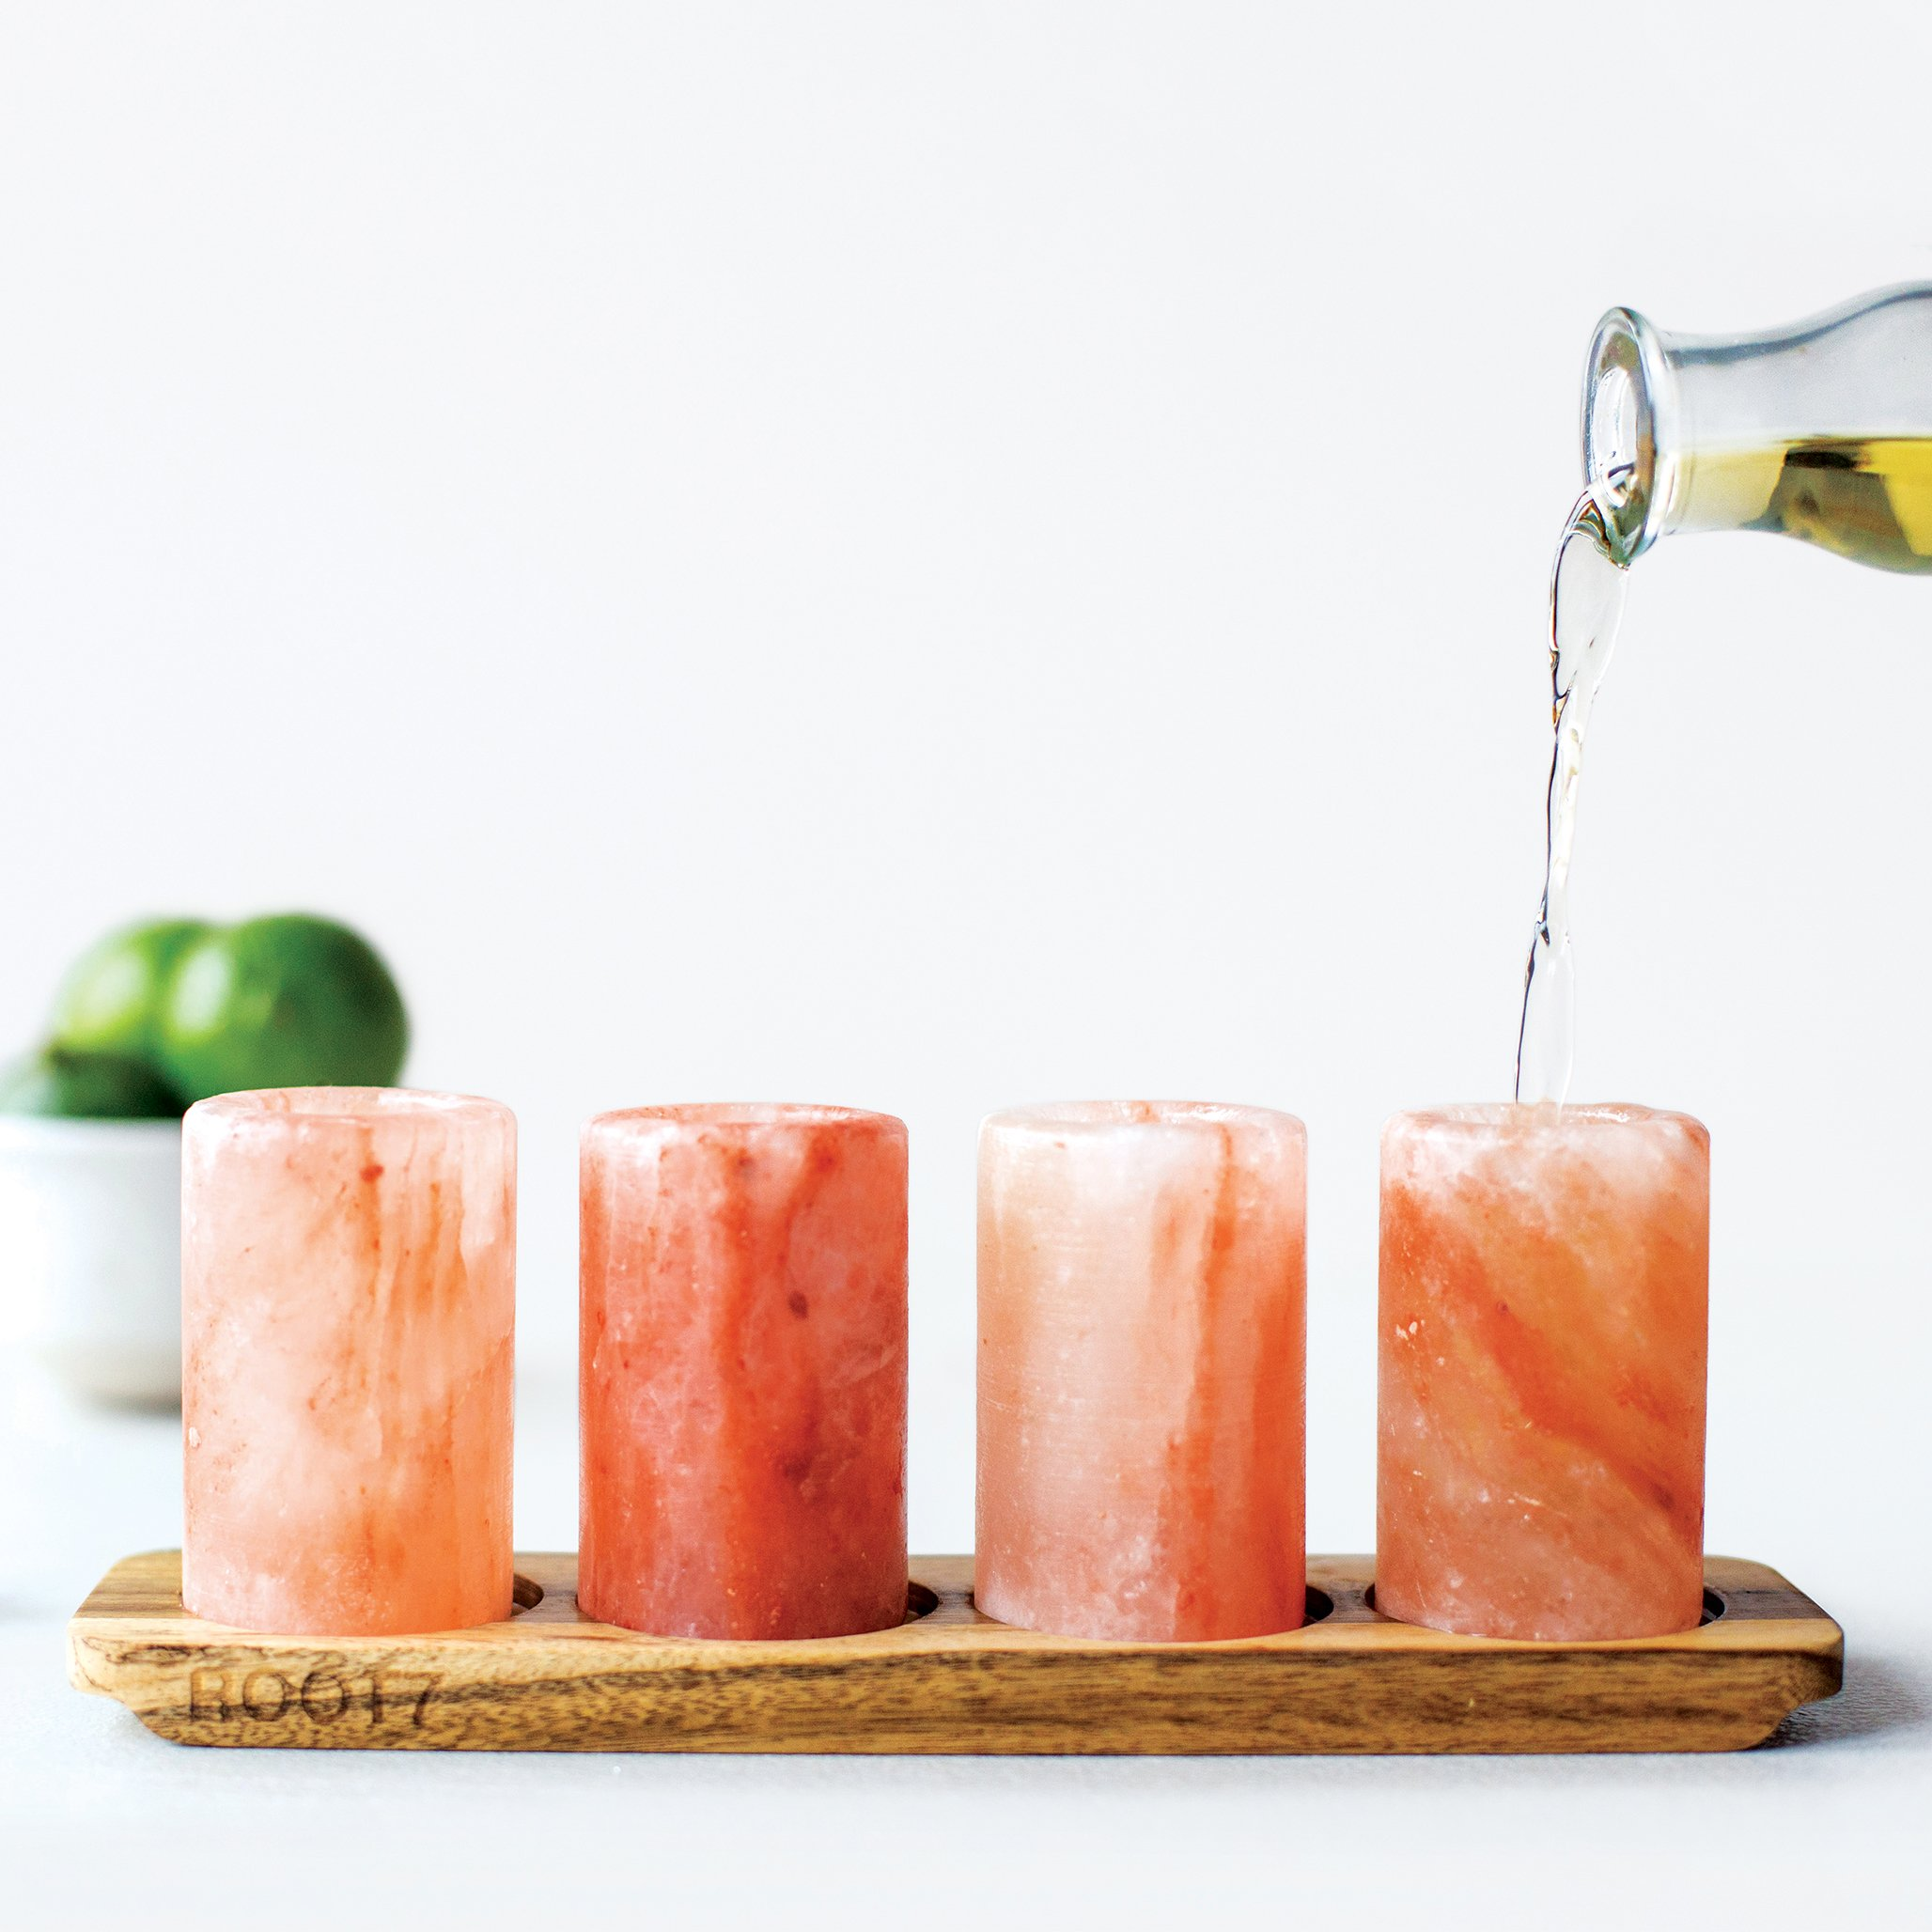 Himalayan Salt Shot Glasses 4 Pack With Acacia Wood Serving Board from Root7. Set Of 4 Salt Shot Tequila Glasses. FDA Approved Ethically Sourced 100% Natural Himalayan Salt.